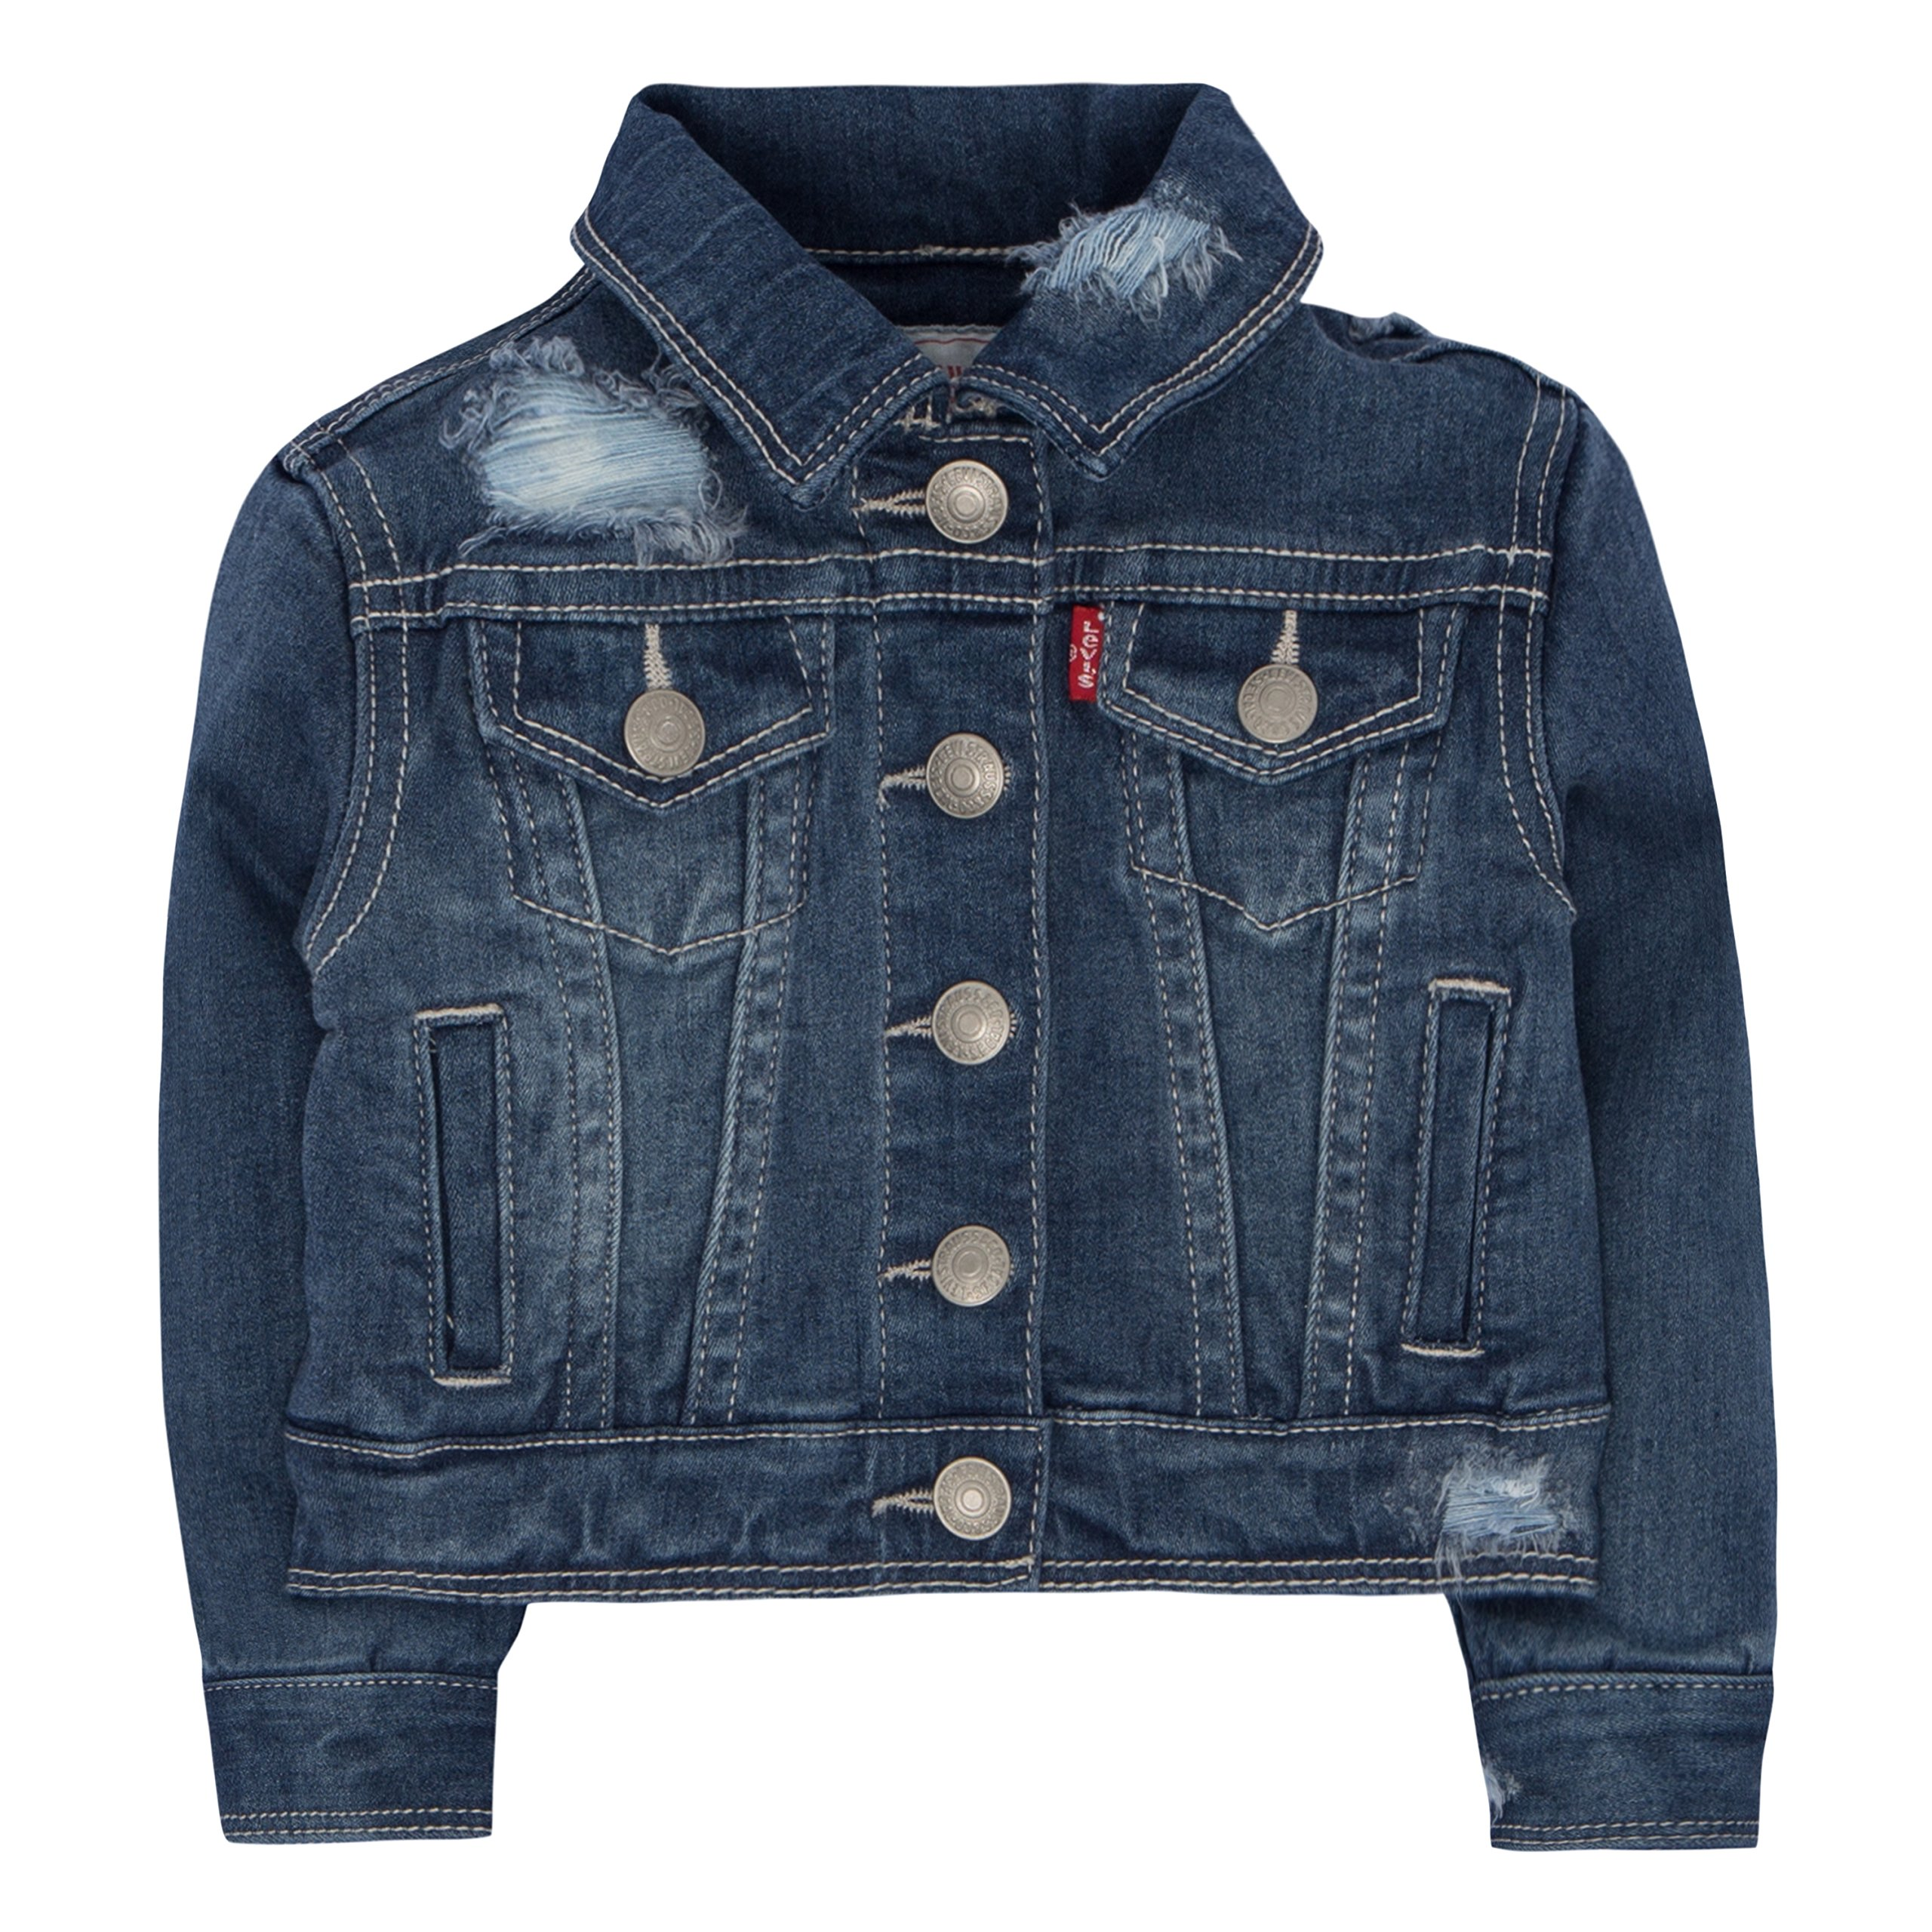 Levi's Baby Girls' Trucker Jacket, Vintage Waters, 18M by Levi's